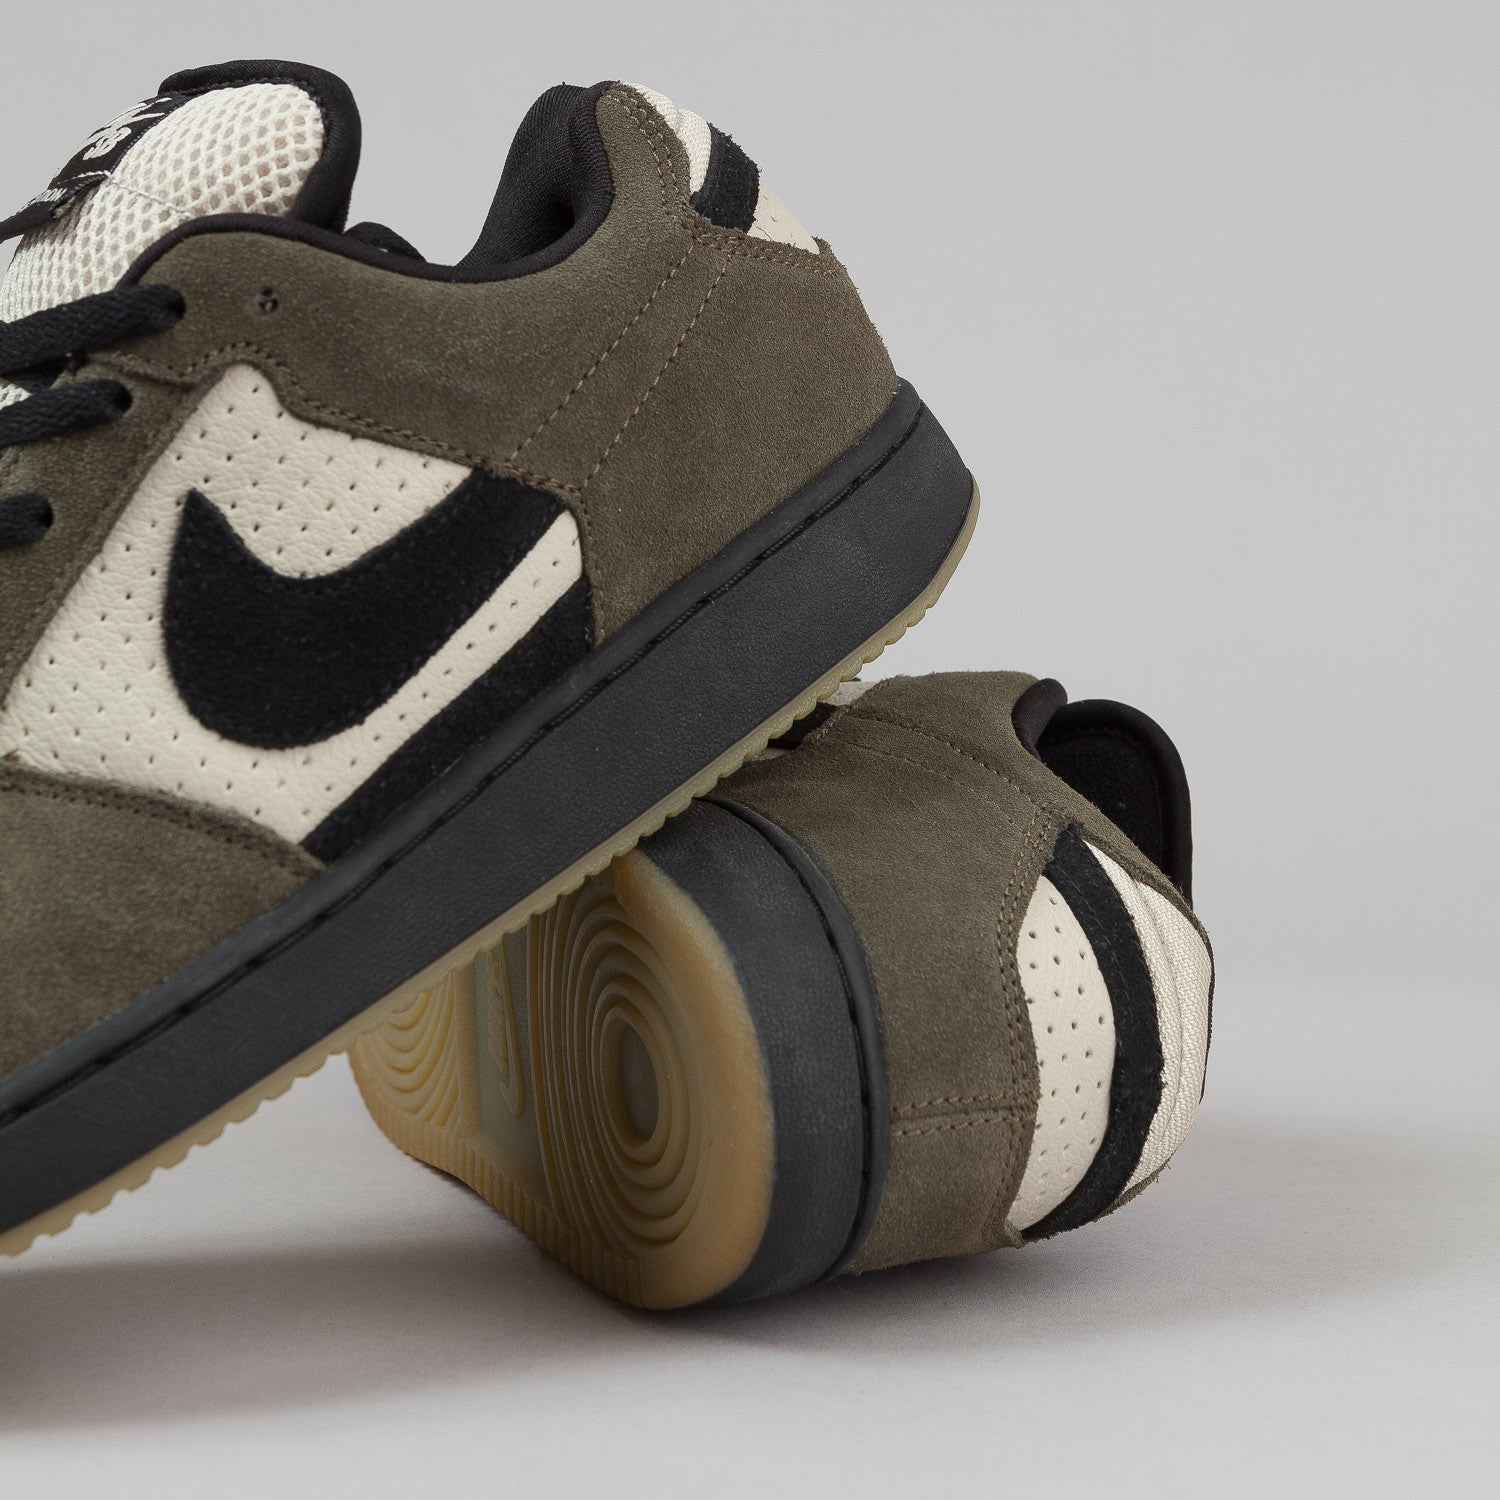 Nike SB Team Edition Shoes - Birch / Black / Asparagus